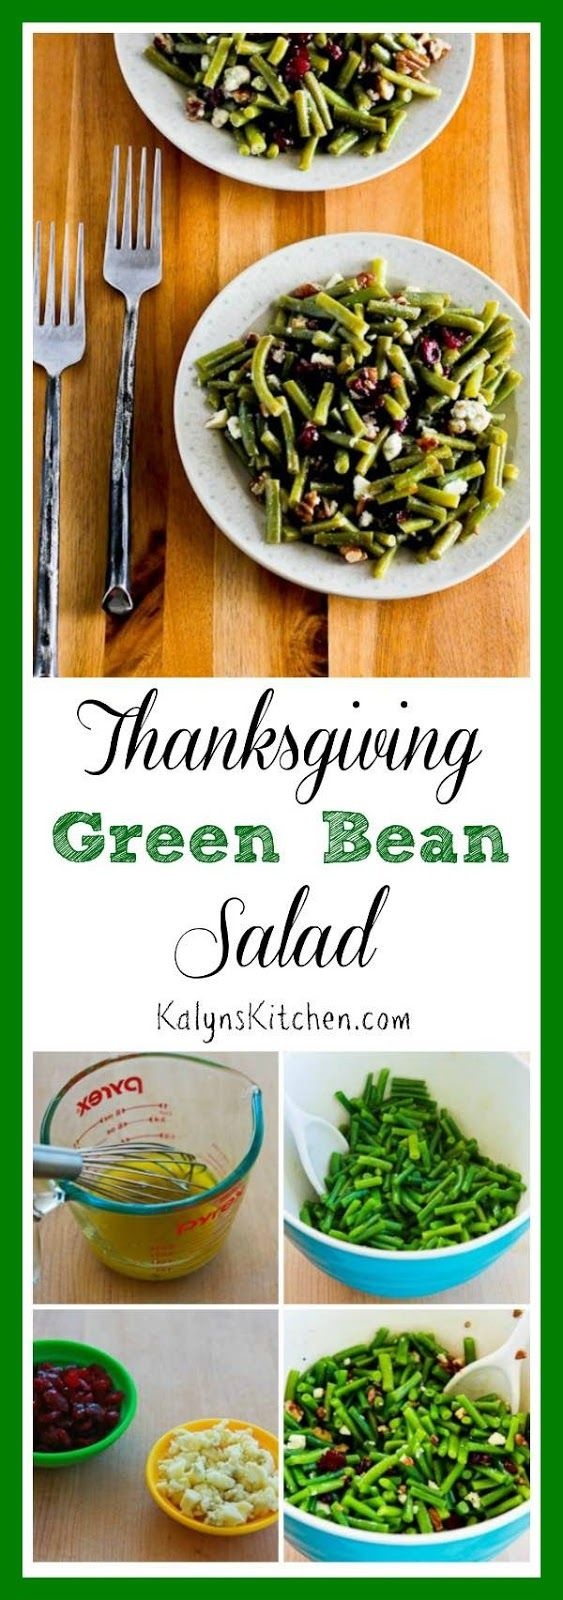 Love this Thanksgiving Green Bean Salad with Blue Cheese, Dried Cranberries, and Pecans, and everything can be made ahead and tossed together when it's time to eat.  [found on KalynsKitchen.com]